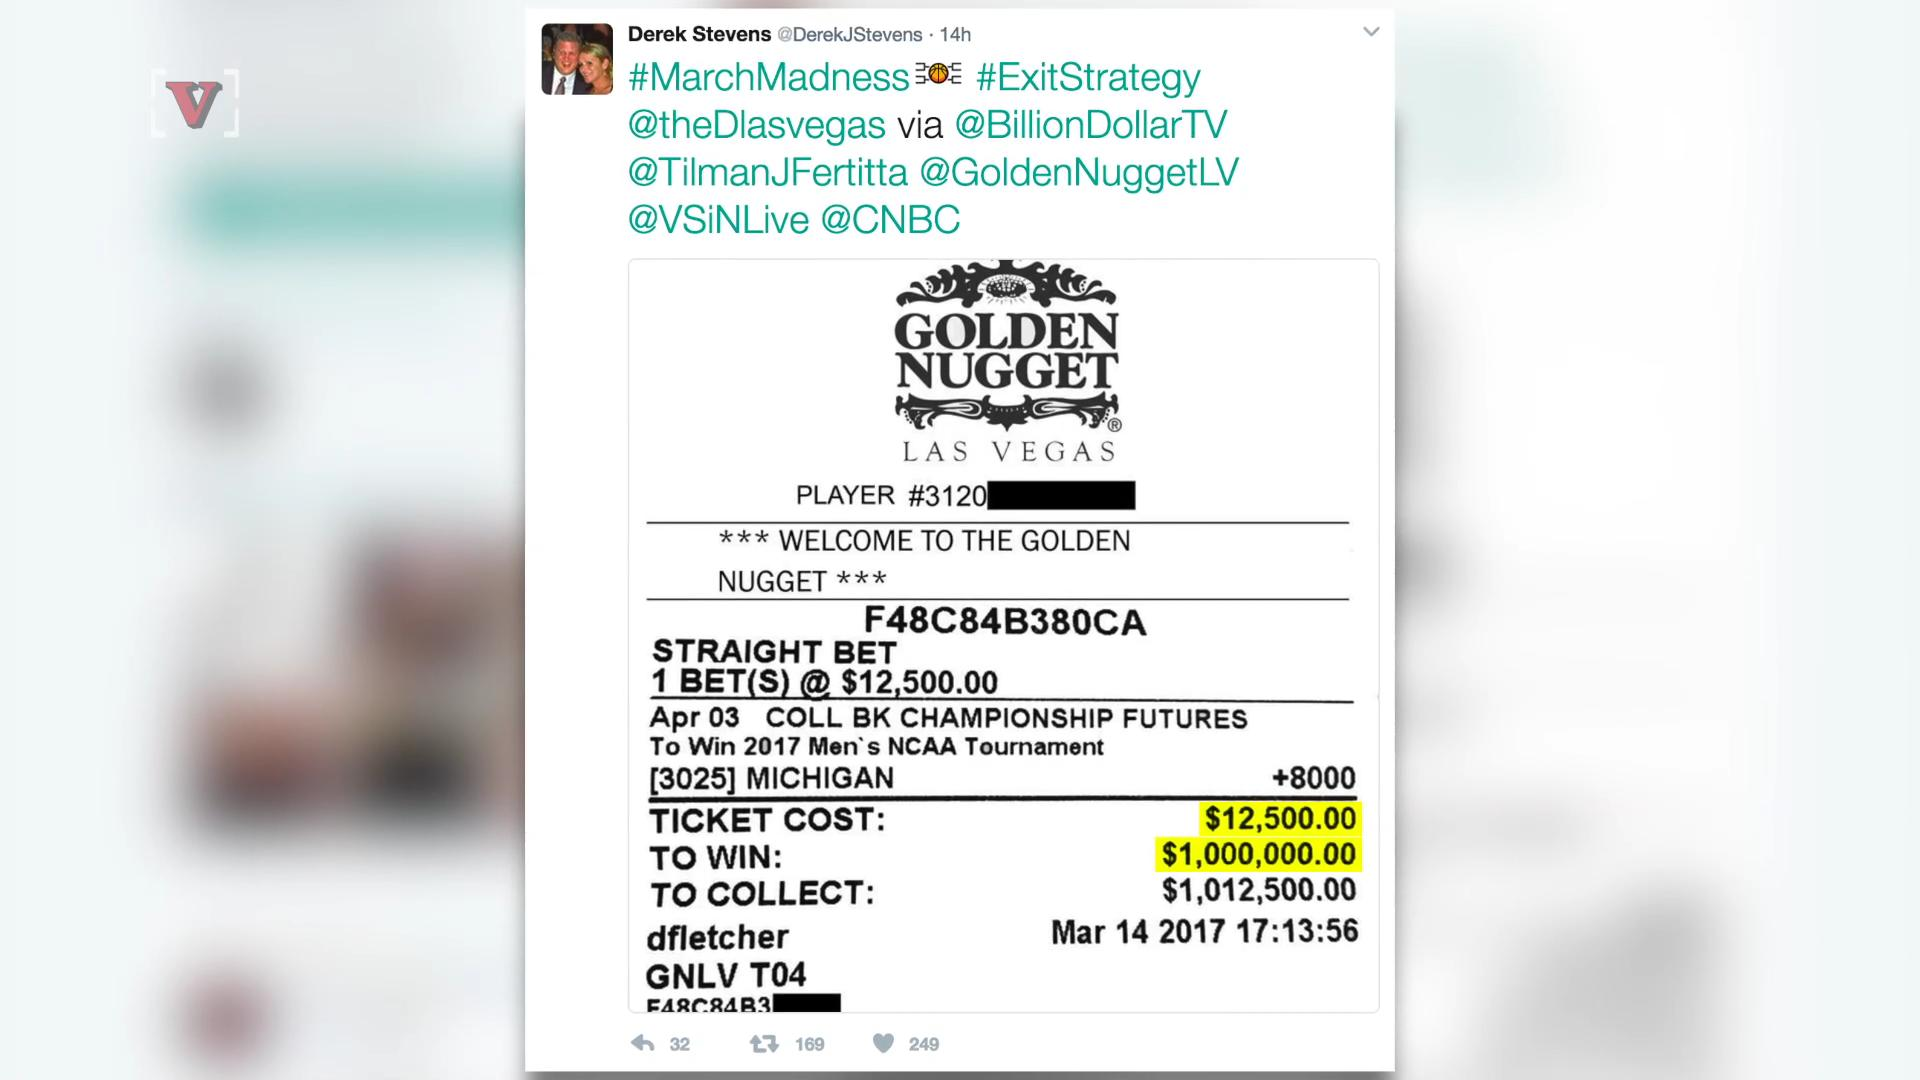 Vegas Casino Owner Could Win Big Betting On Michigan In The NCAA Tournament